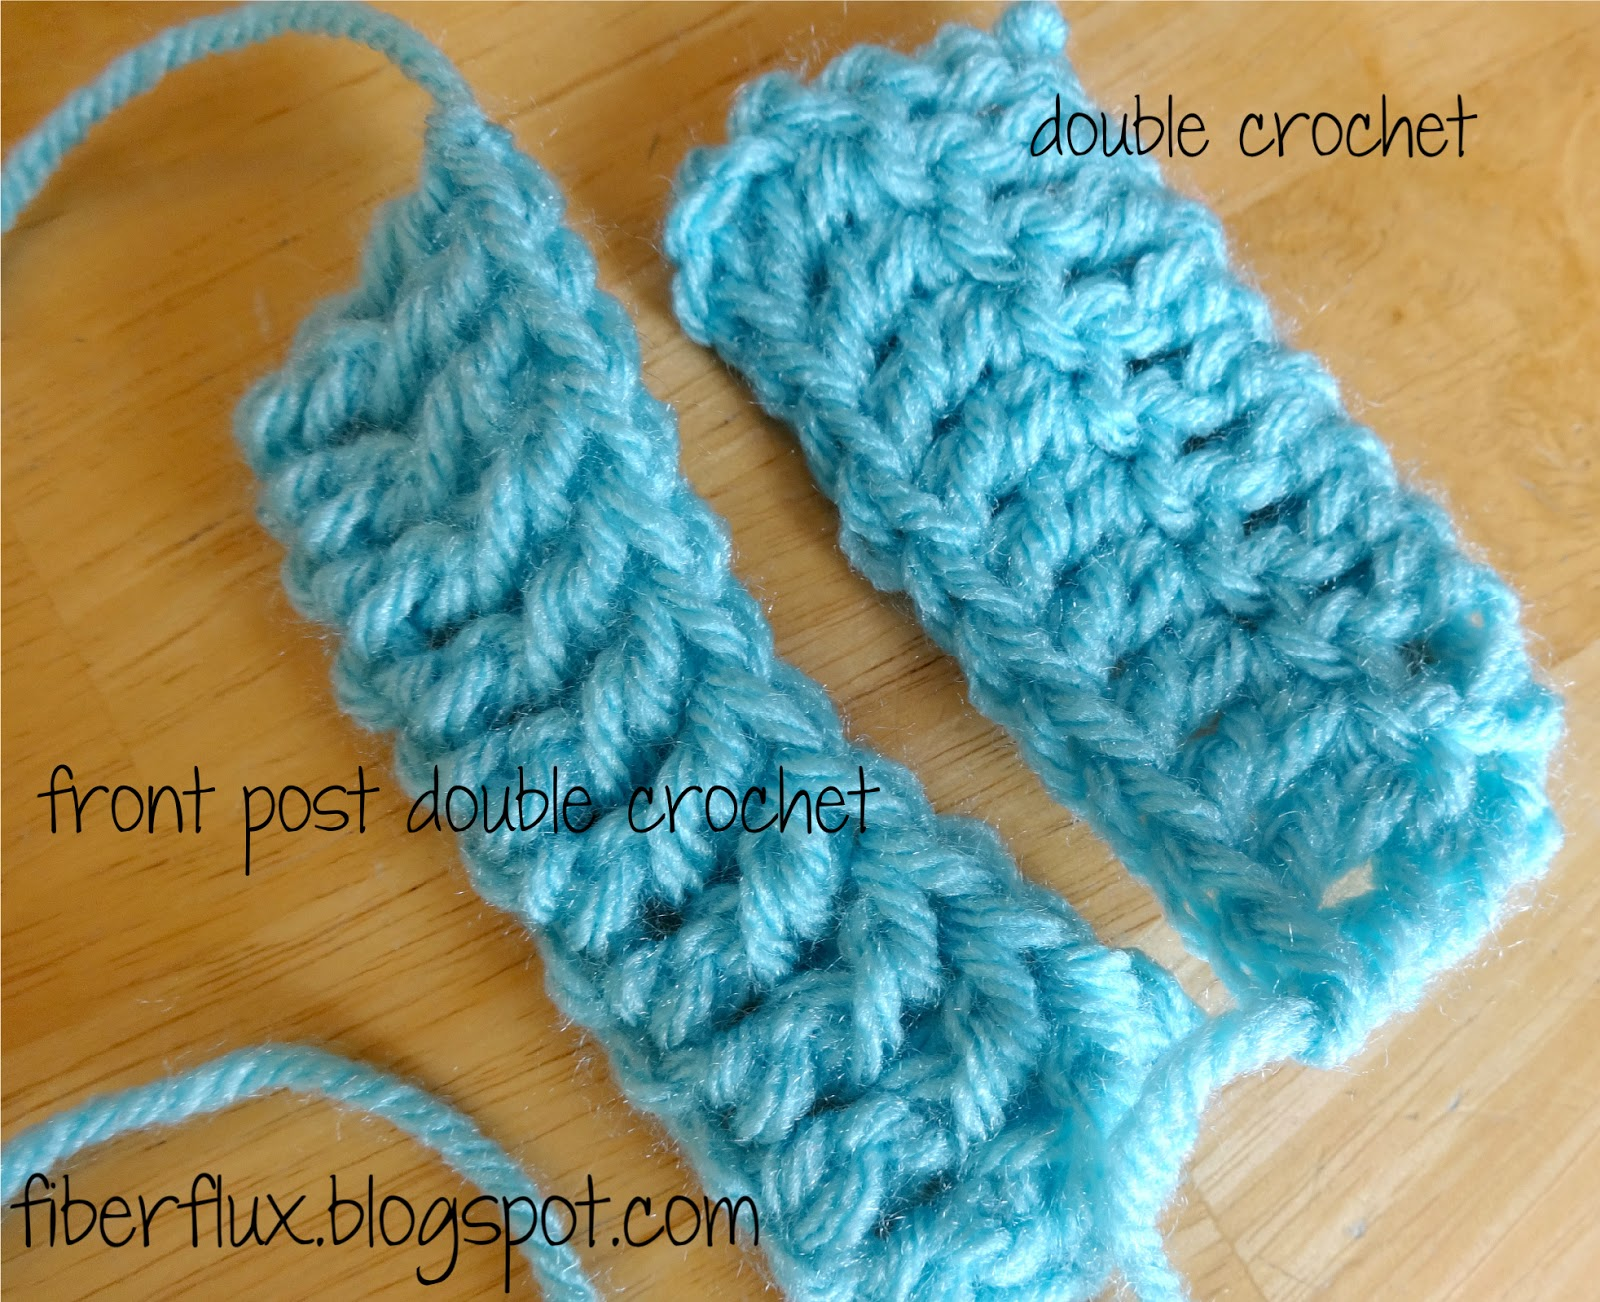 Crochet Stitches Back Post Double Crochet : Fiber Flux: How to Work the Front Post Double Crochet Stitch (fpdc)